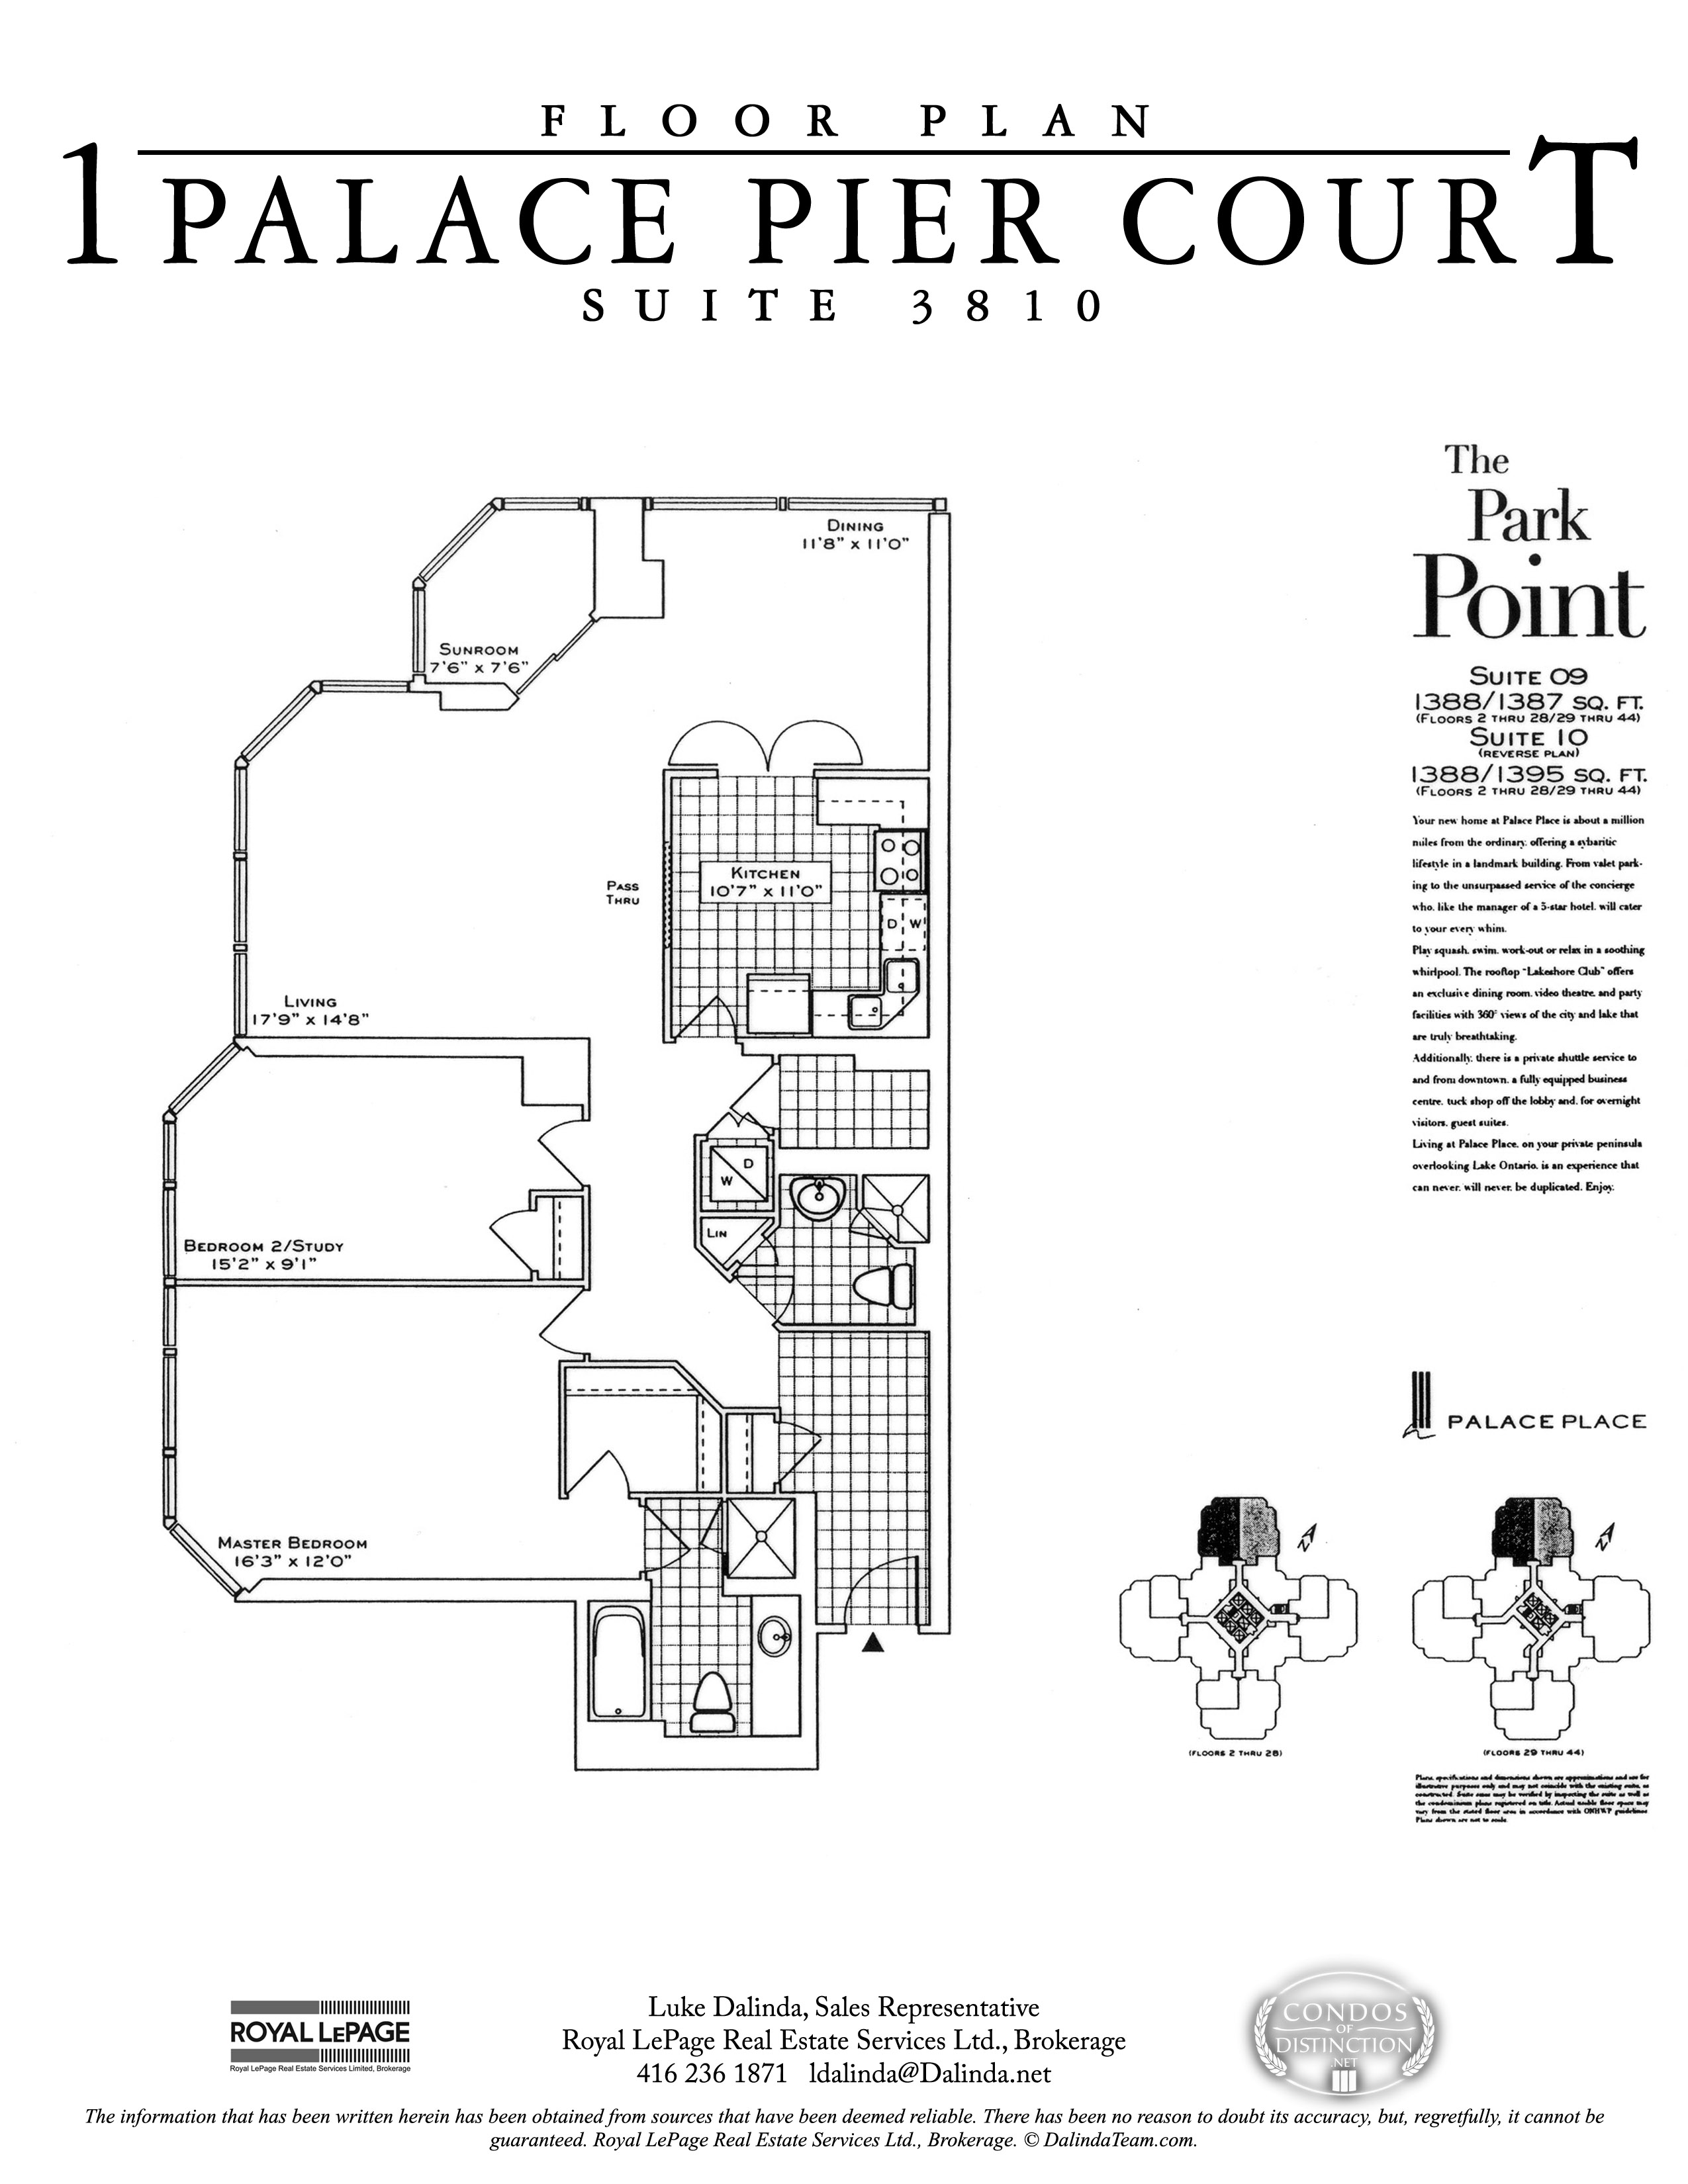 Palace Place Floor Plans Archives Palace Place 1 Palace